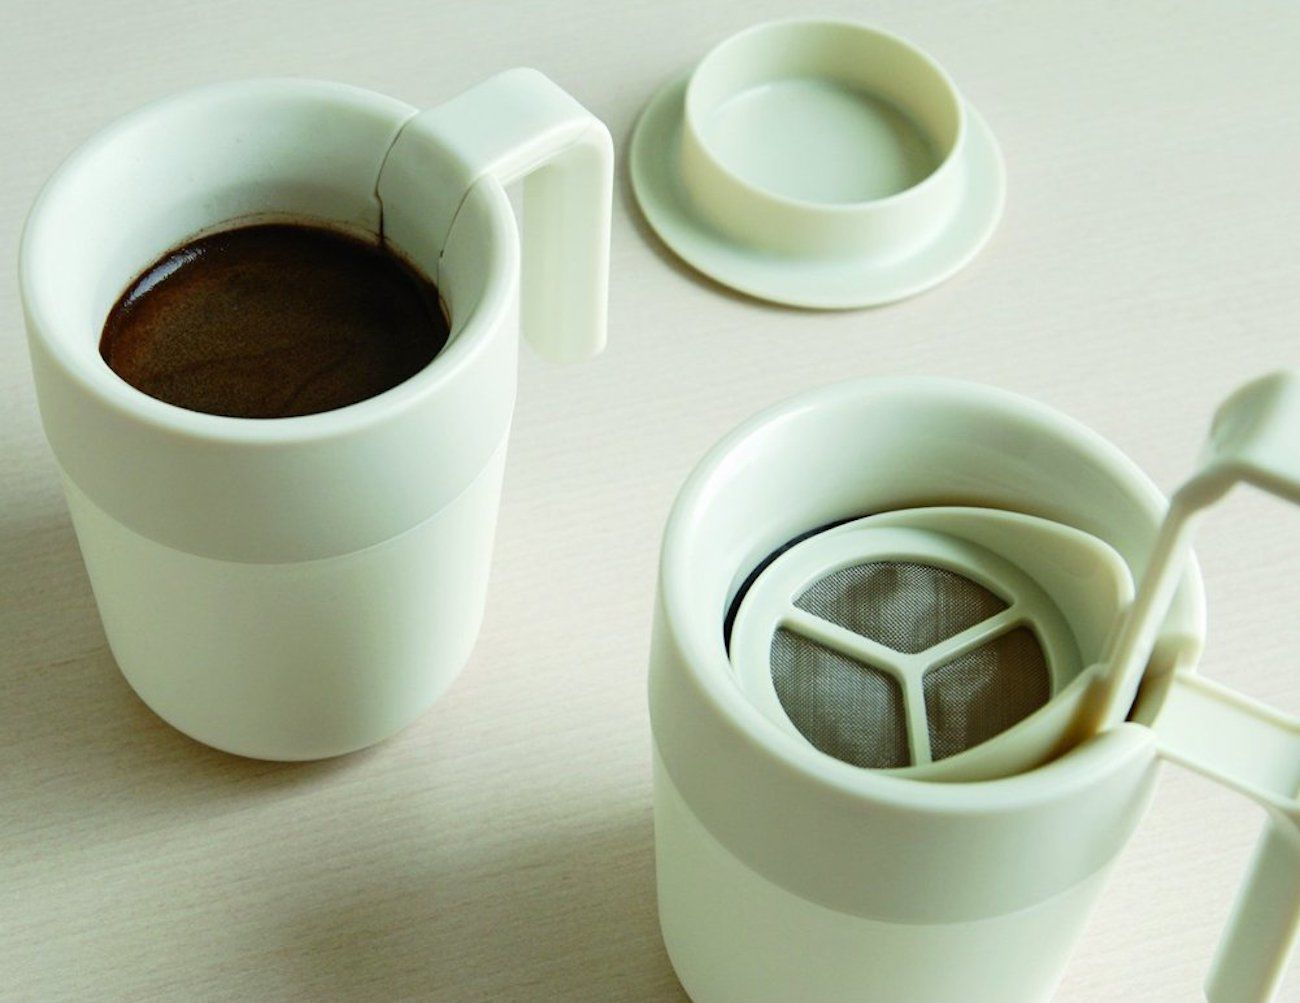 Kinto+Cafe+Press+Instant+Coffee+Mug